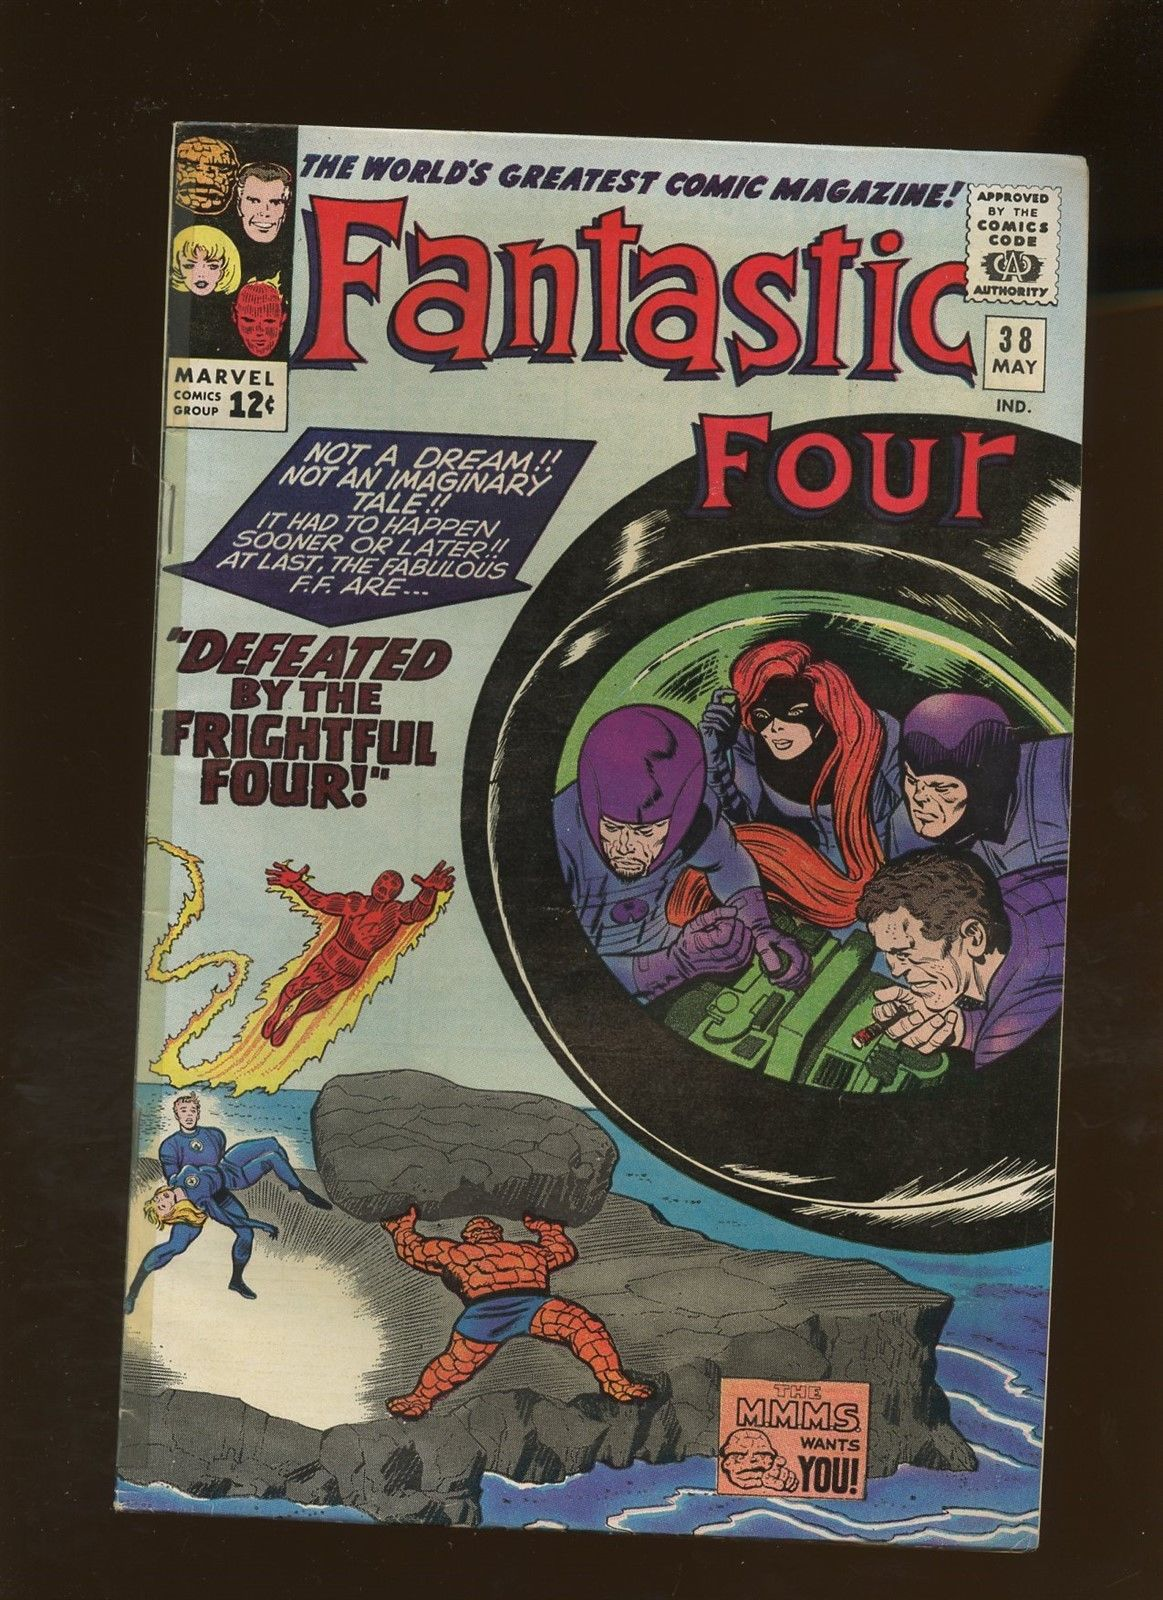 Fantastic Four 38 VG 4.0 *1 Book* Defeated by the Frightful Four by Lee & Kirby